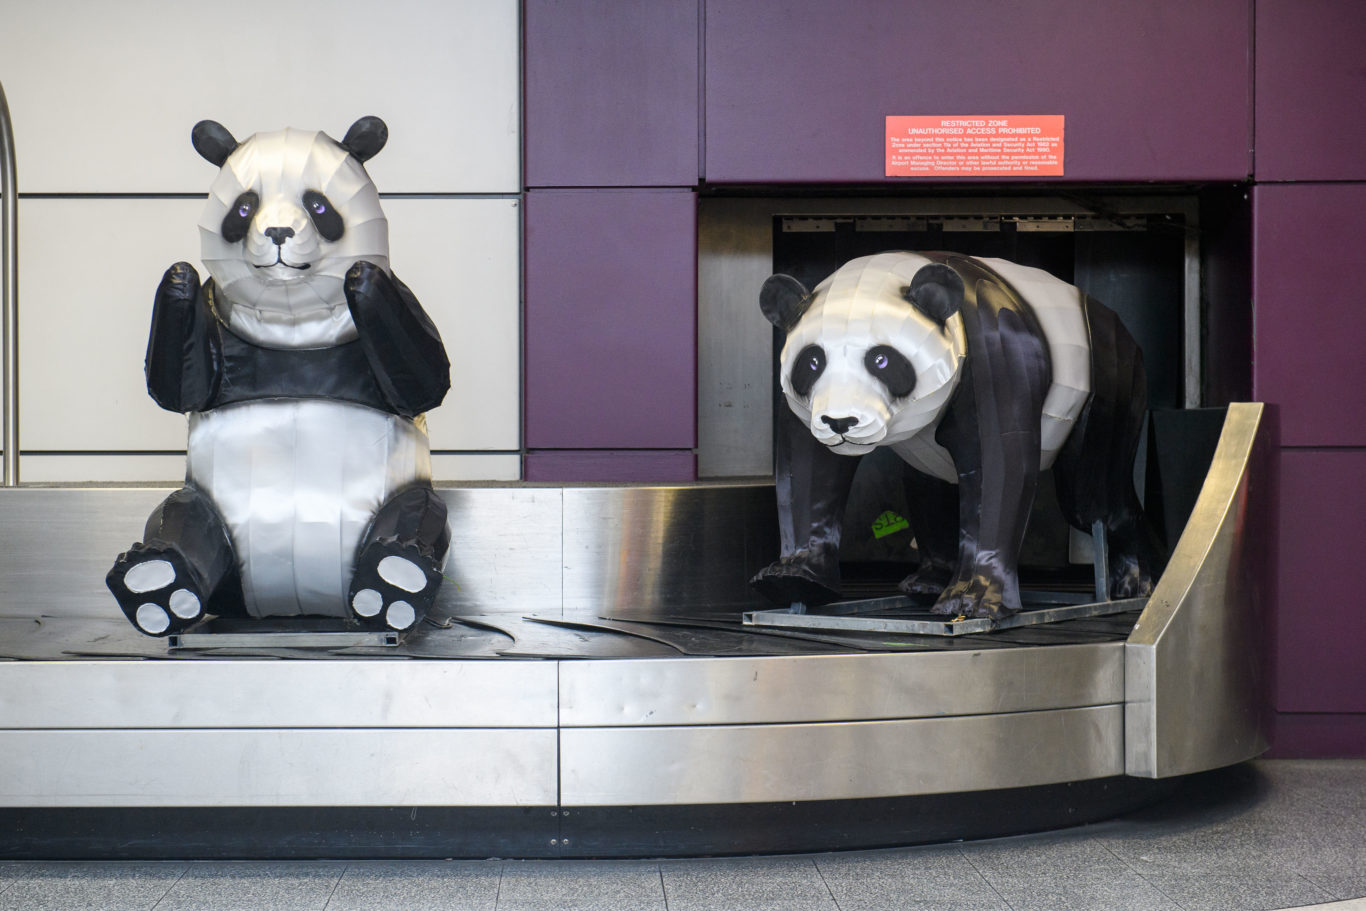 Edinburgh is home to two giant pandas from China